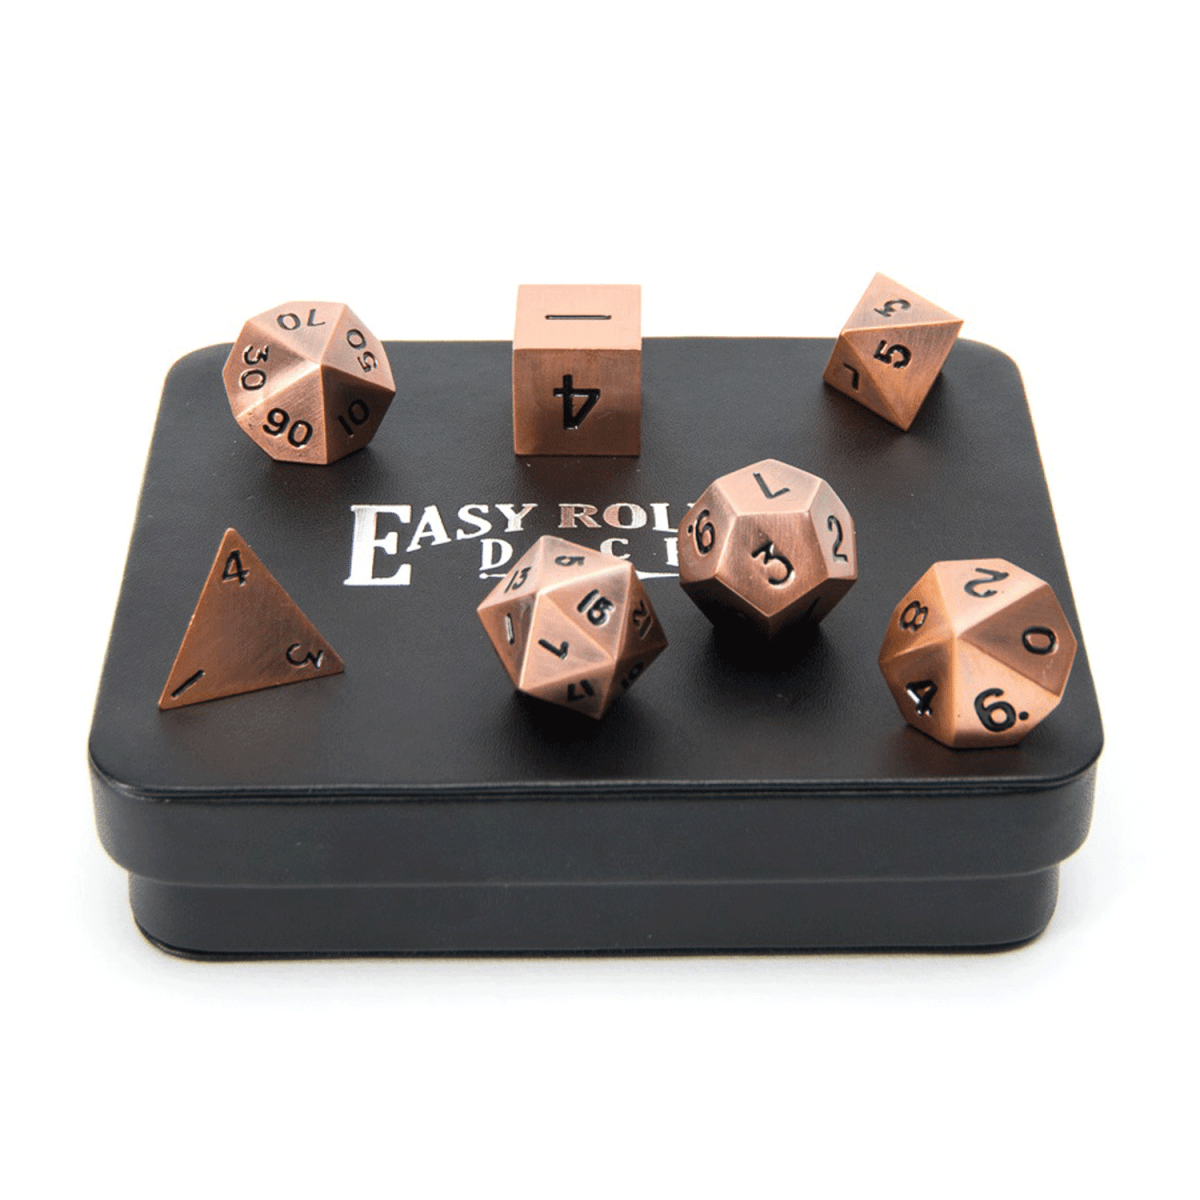 Easy Roller Dice Review